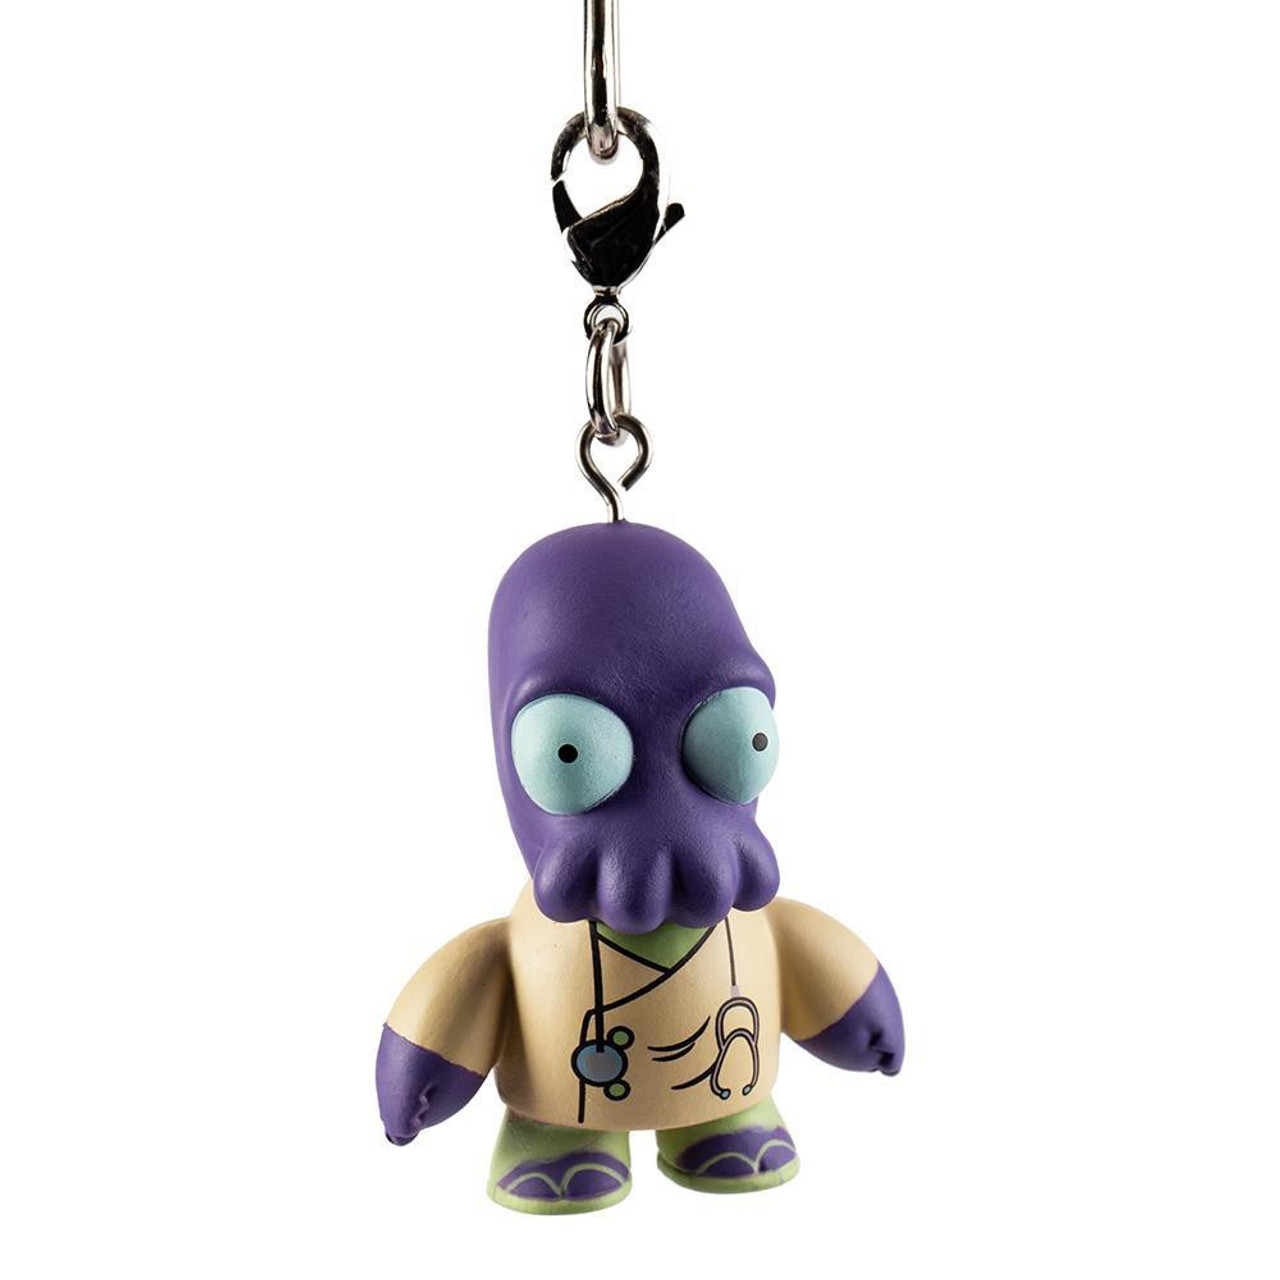 Futurama Universe X Keychains Display Case 24 Blind Boxes by Kidrobot